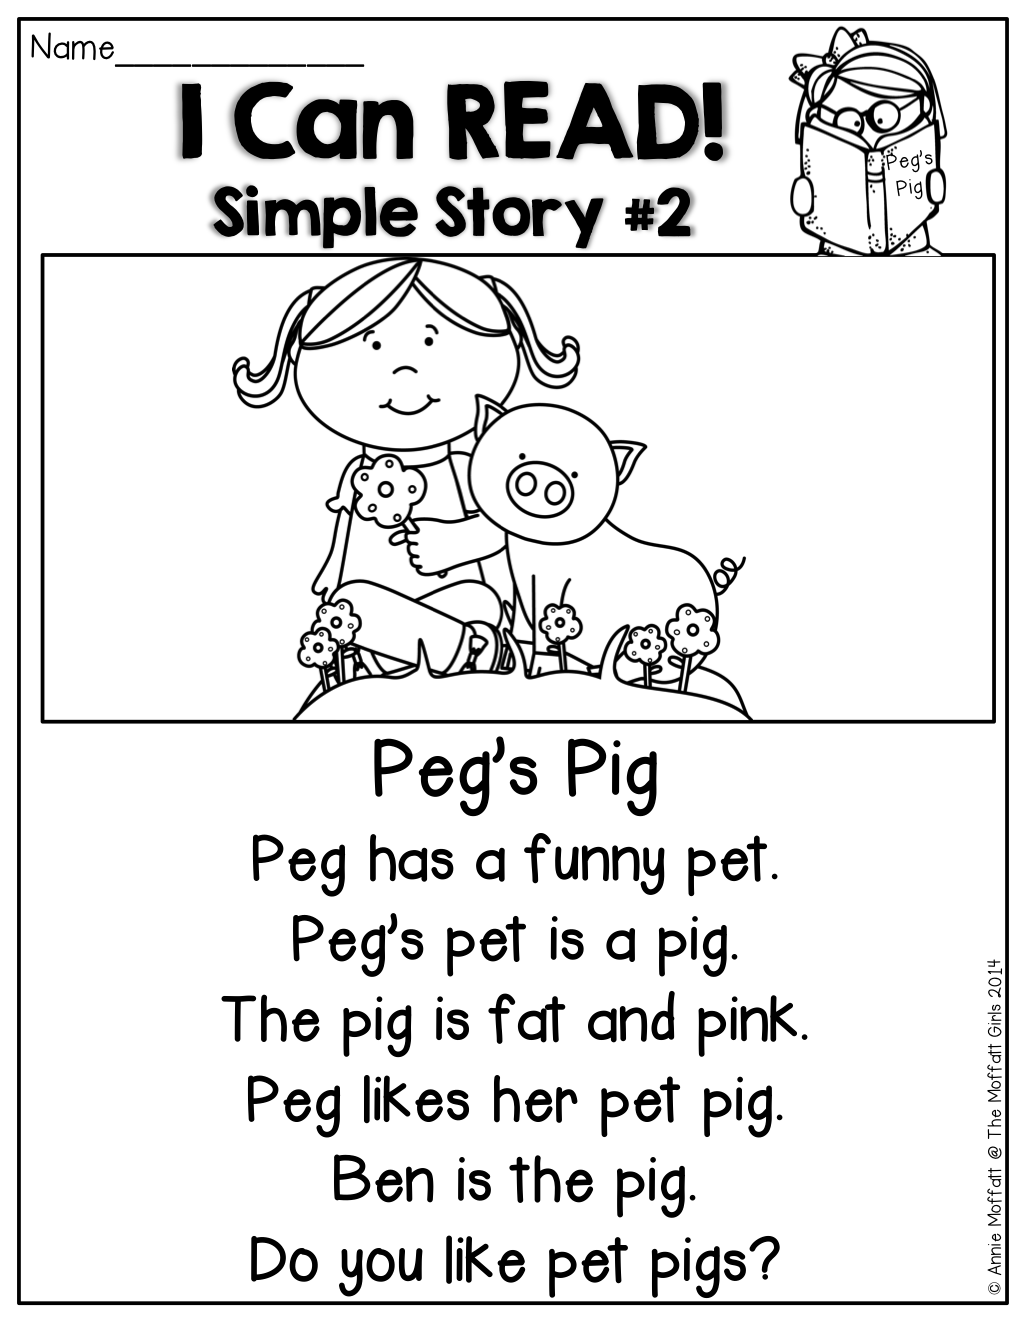 I Can Read Simple Stories With Basic Sight Words And Cvc